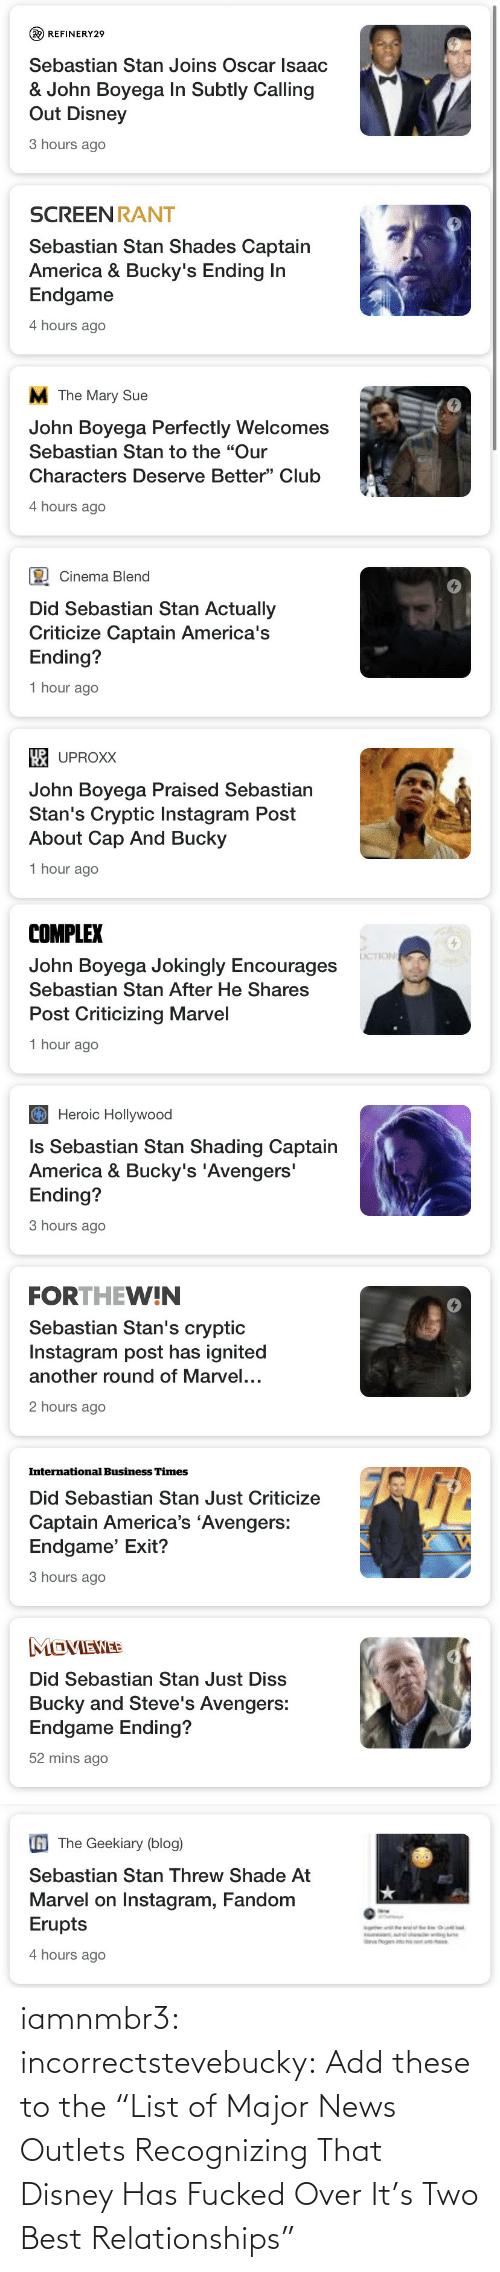 "list: iamnmbr3:  incorrectstevebucky: Add these to the ""List of Major News Outlets Recognizing That Disney Has Fucked Over It's Two Best Relationships"""